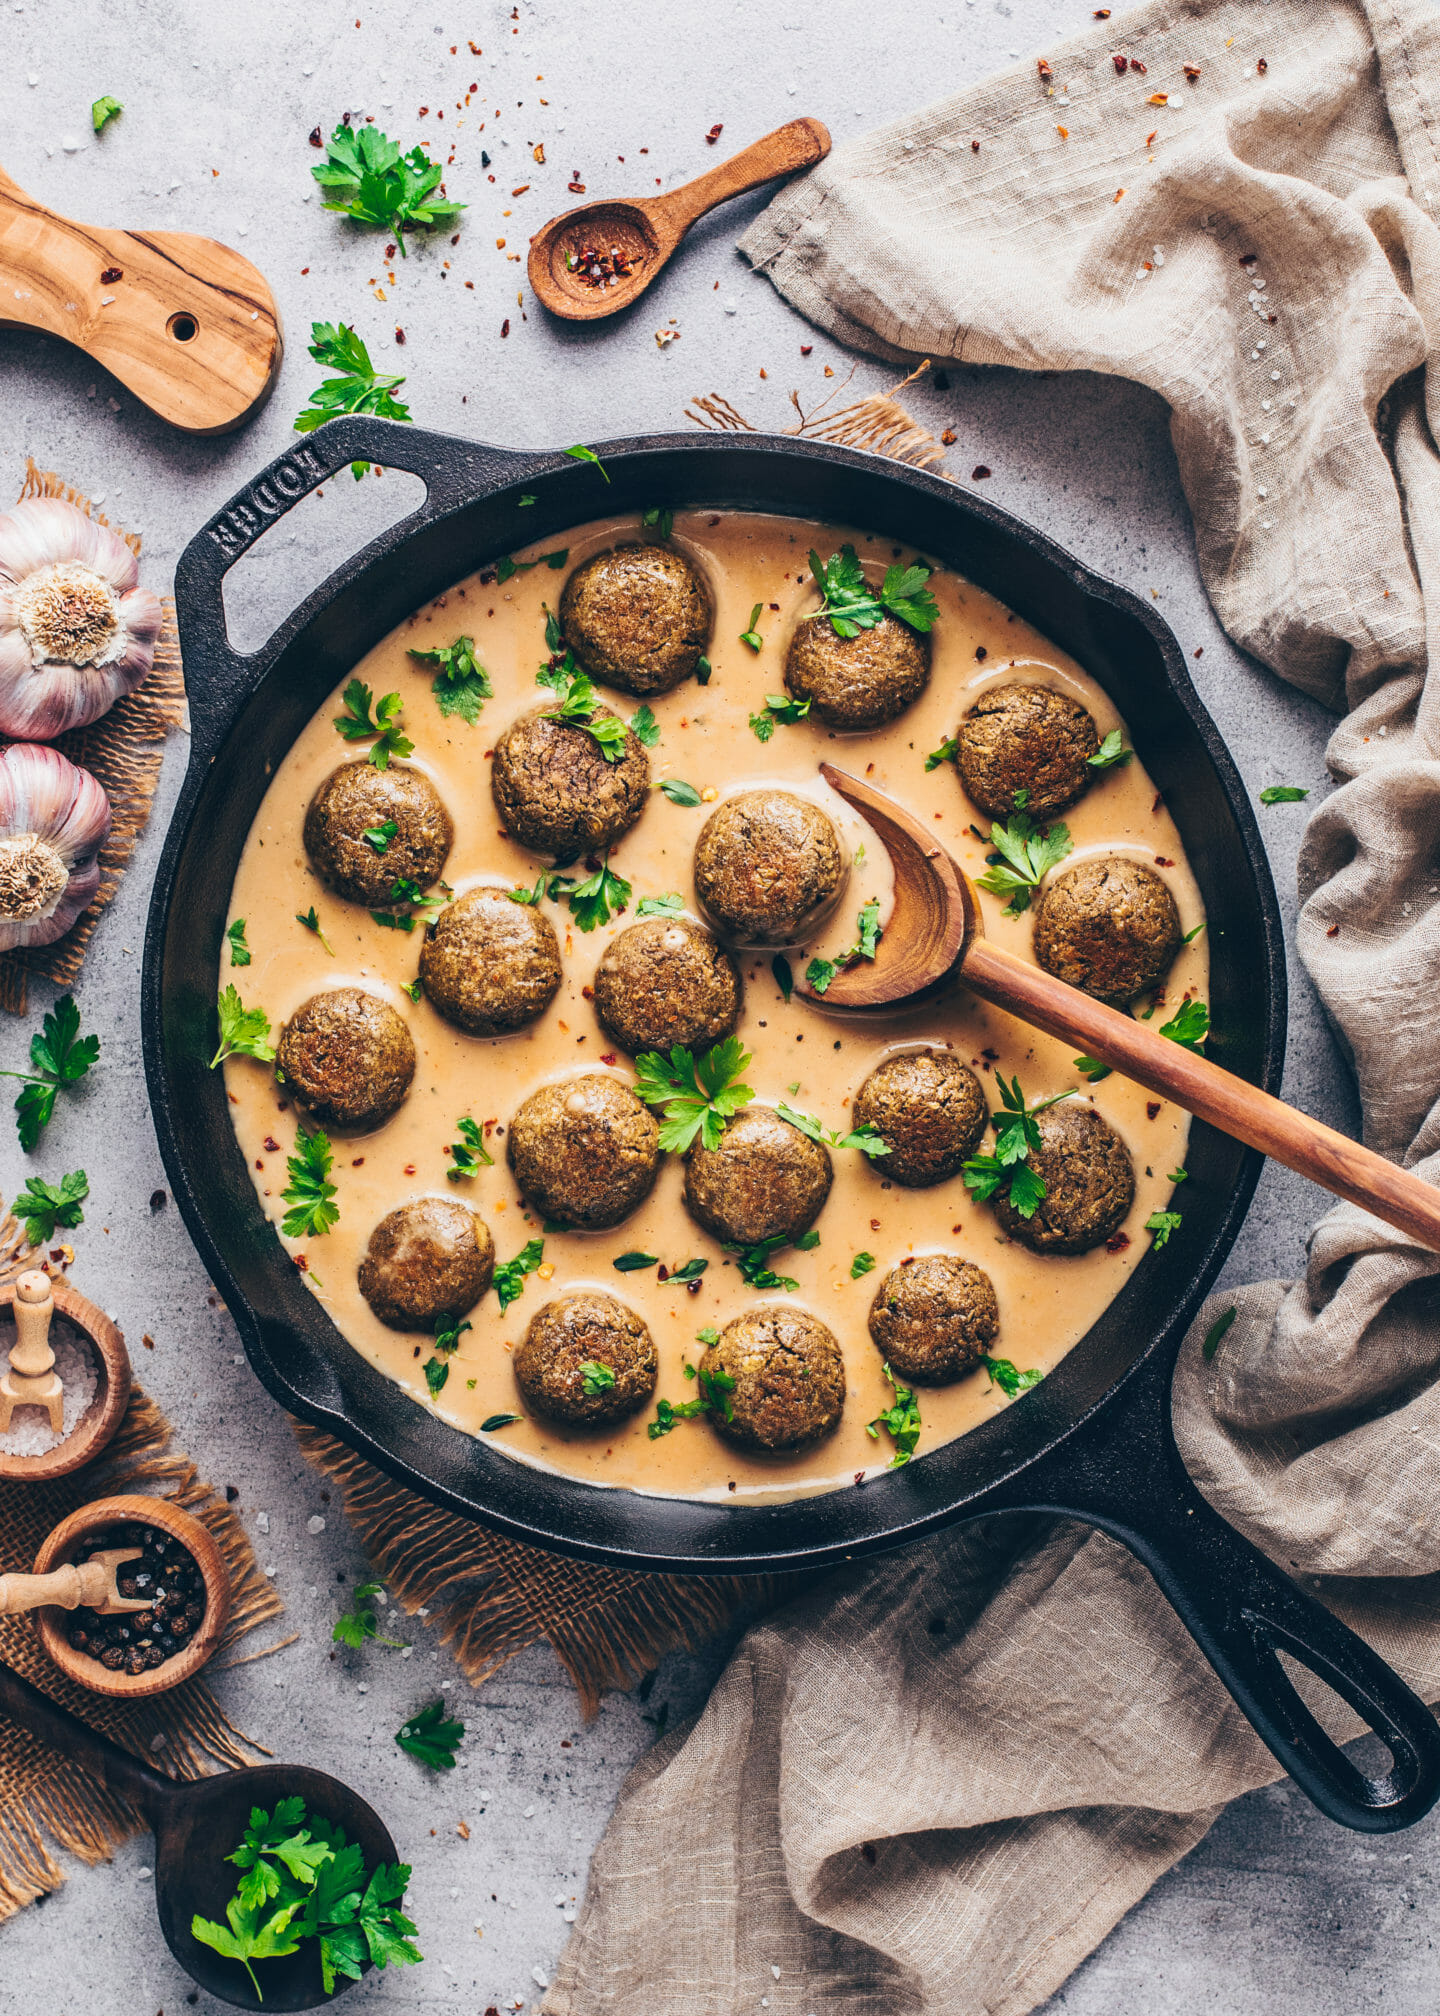 Vegan Swedish Meatballs with creamy gravy in a skillet